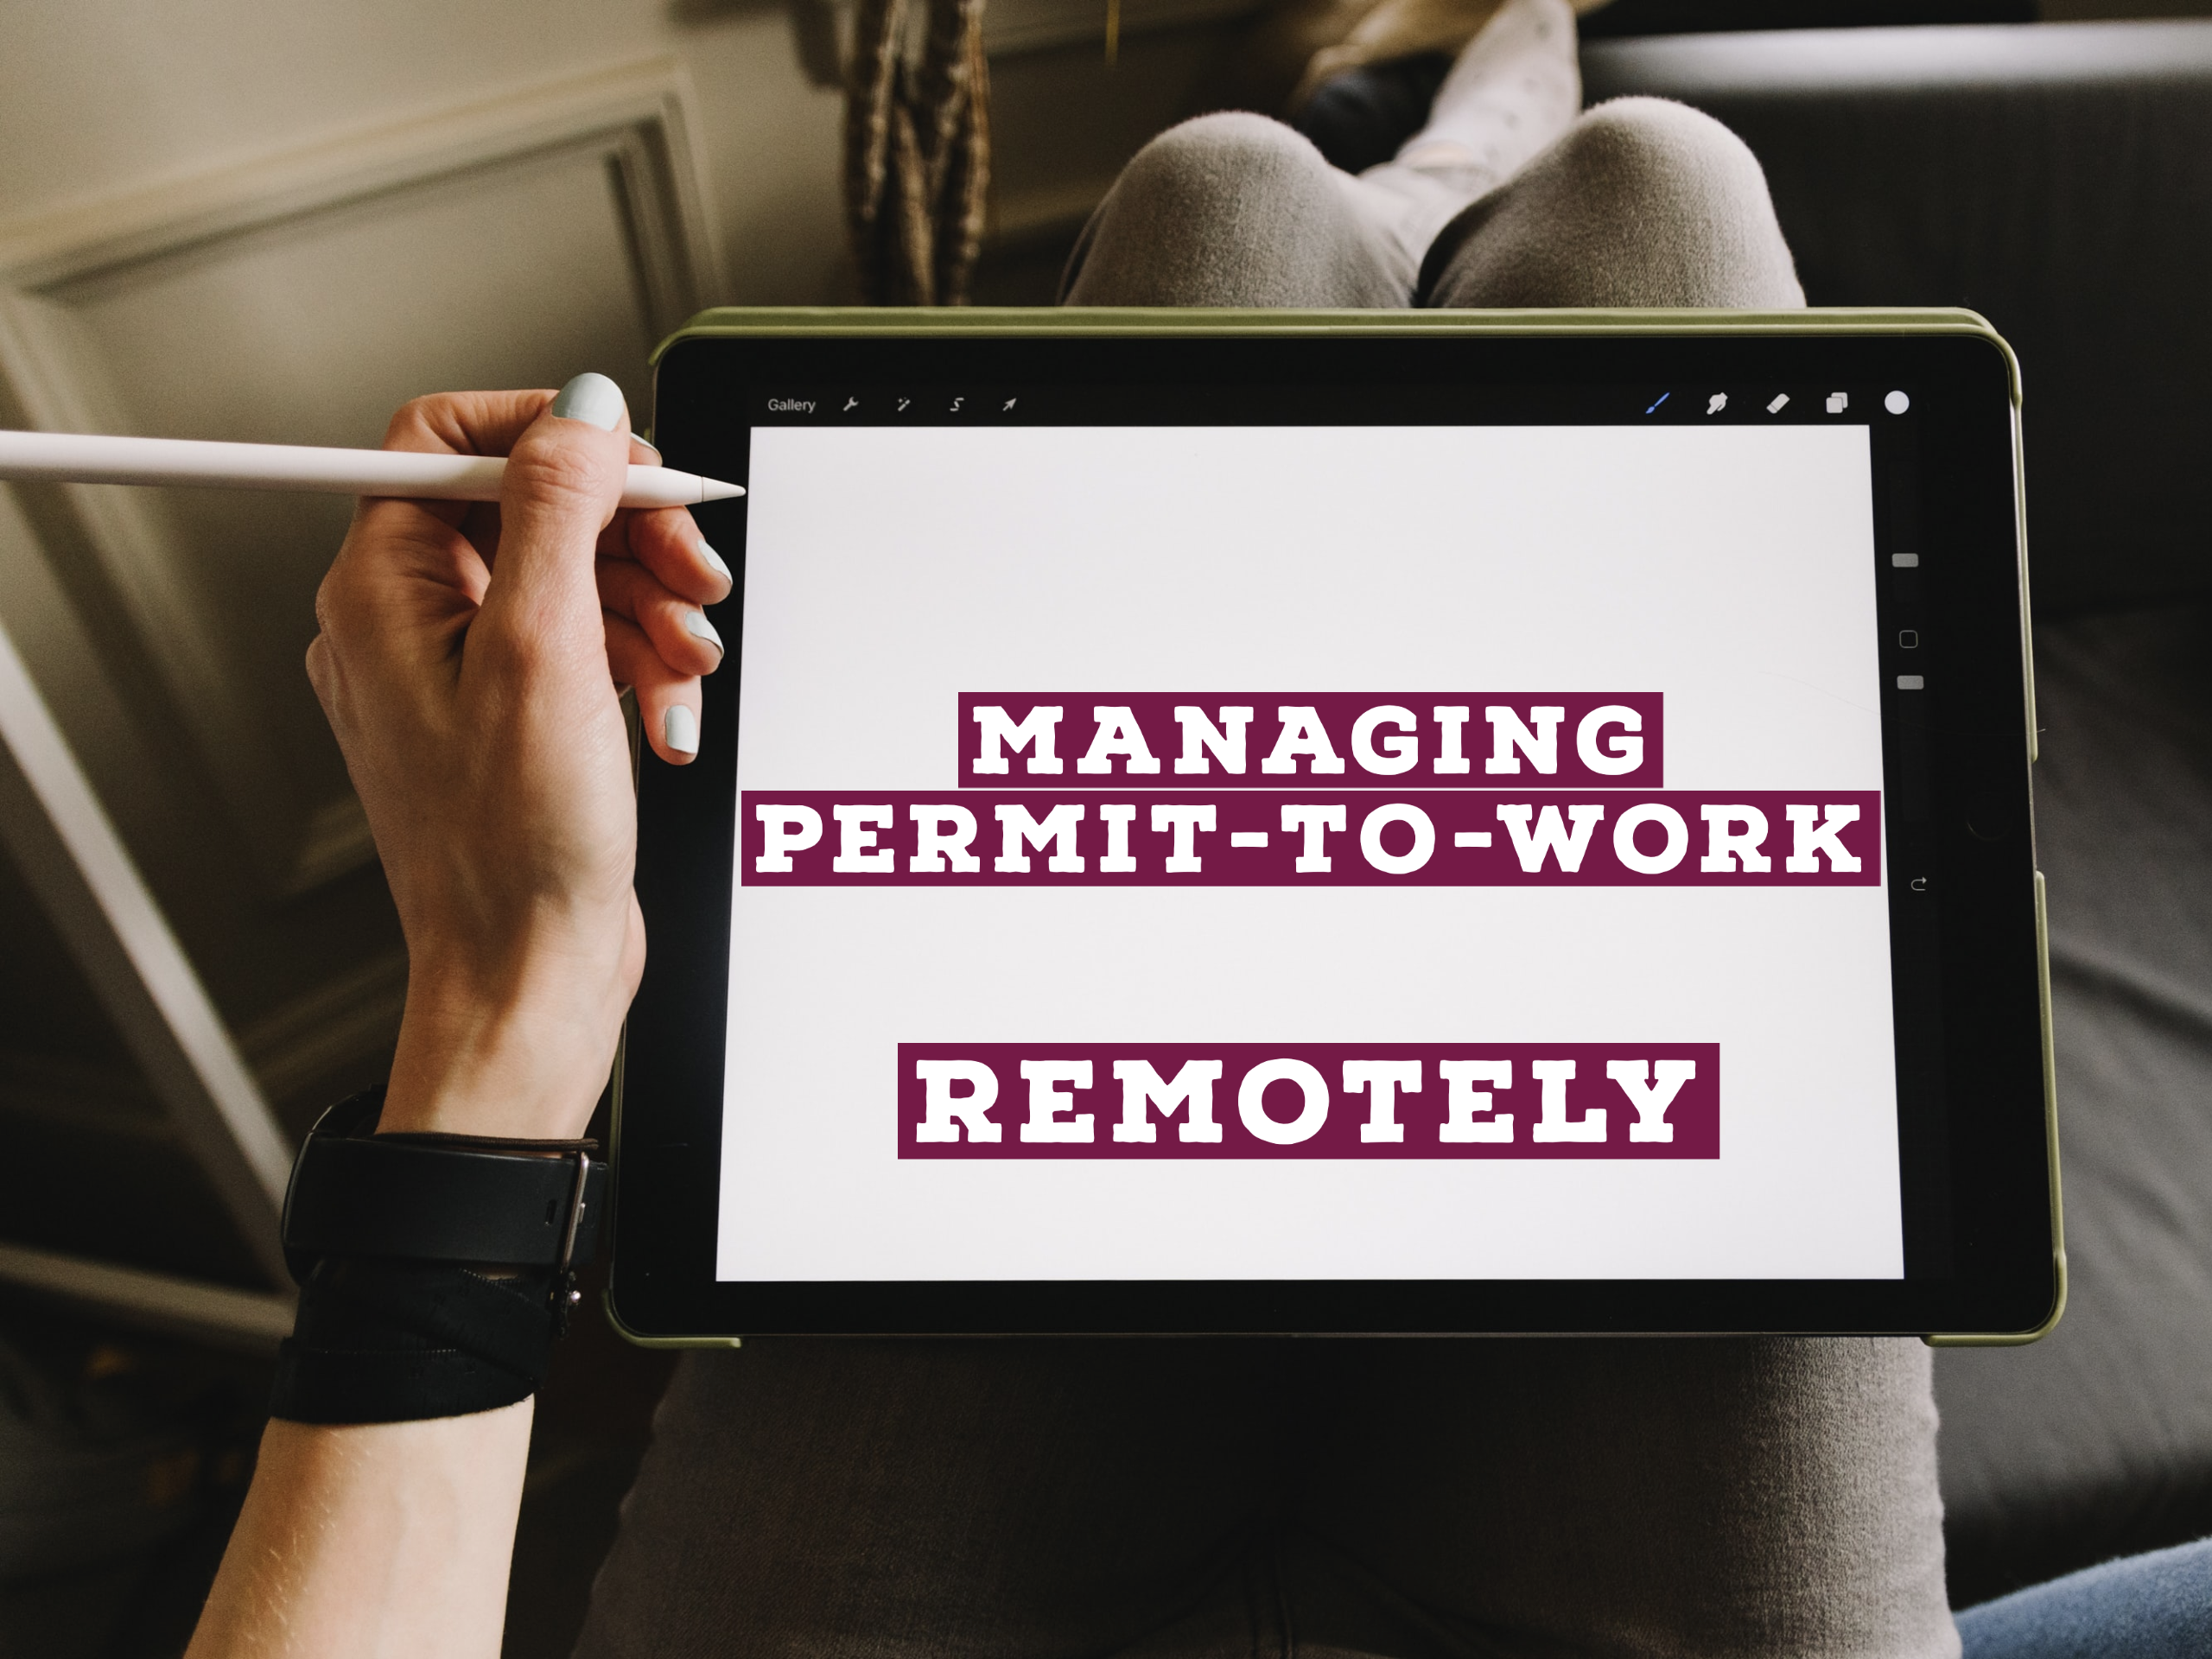 Managing Permit-to-Work Remotely